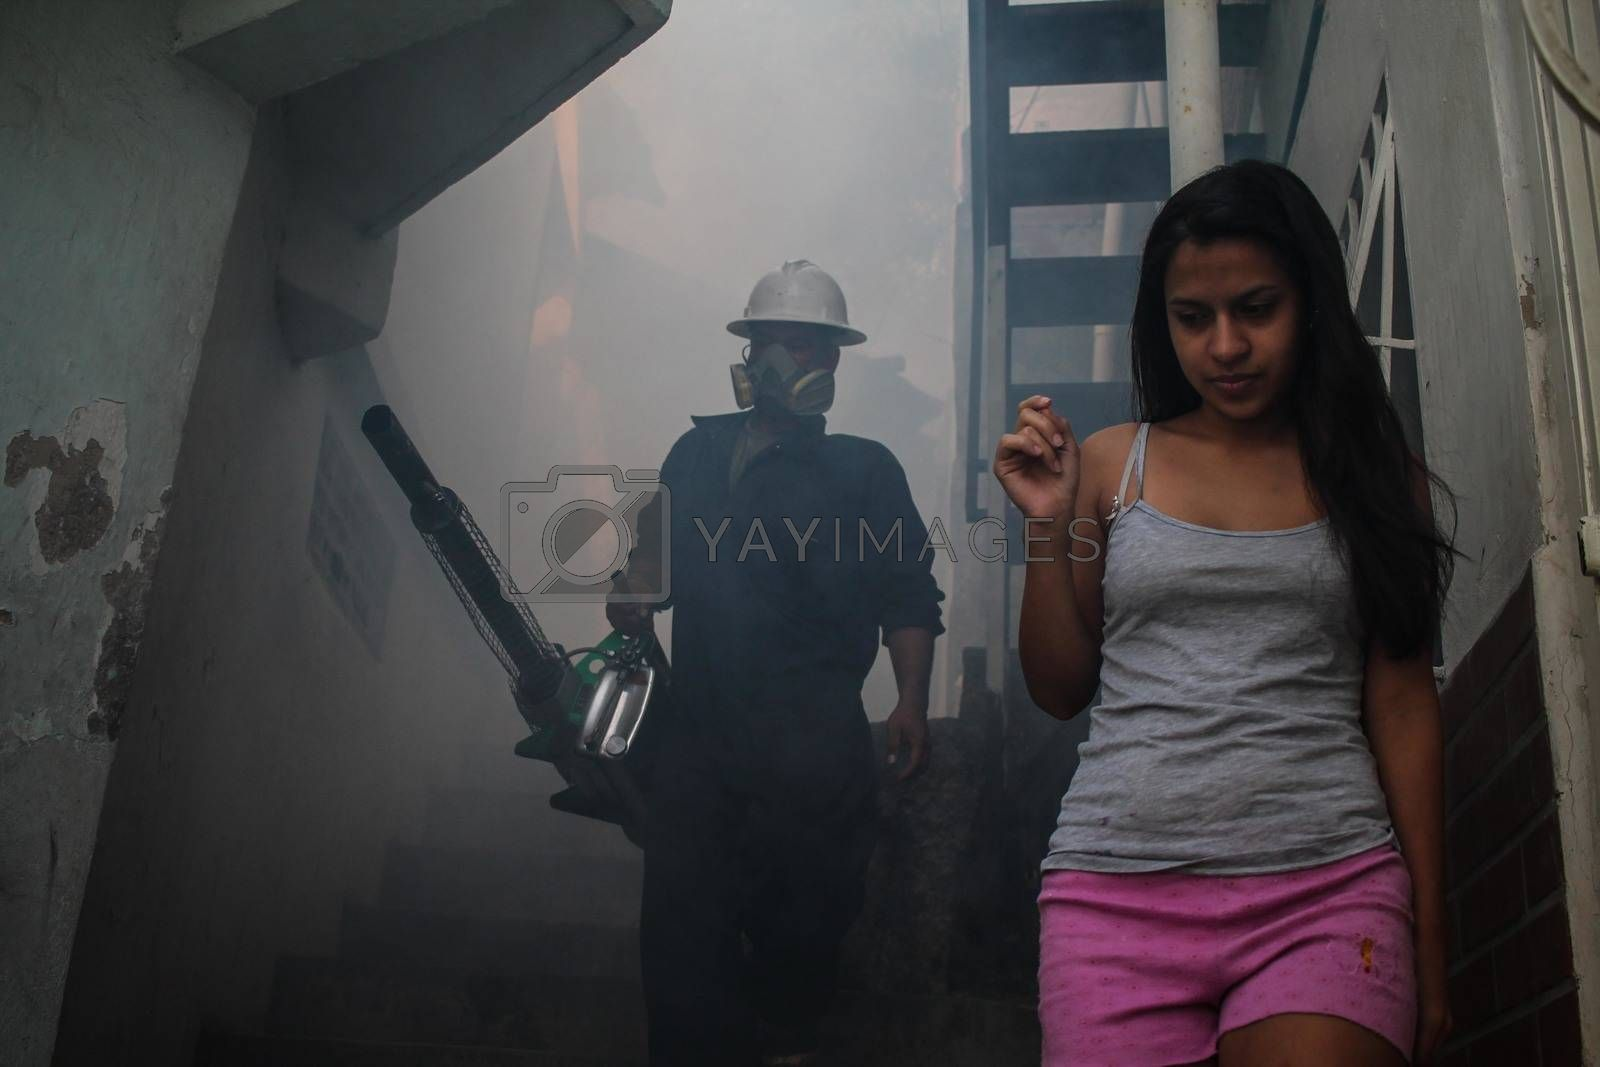 VENEZUELA, Caracas: A member of a fumigation crew waits for a girl to exit her home to allow for the extermination of Aedes mosquitoes carrying the Zika virus in the slums of Caracas, Venezuela on February 3, 2016. As of February 4, there have been reports of at least 255 cases of the rare Guillain-Barre syndrome — which causes the immune system to attack the nerves — potentially linked to the Zika virus in Venezuela.